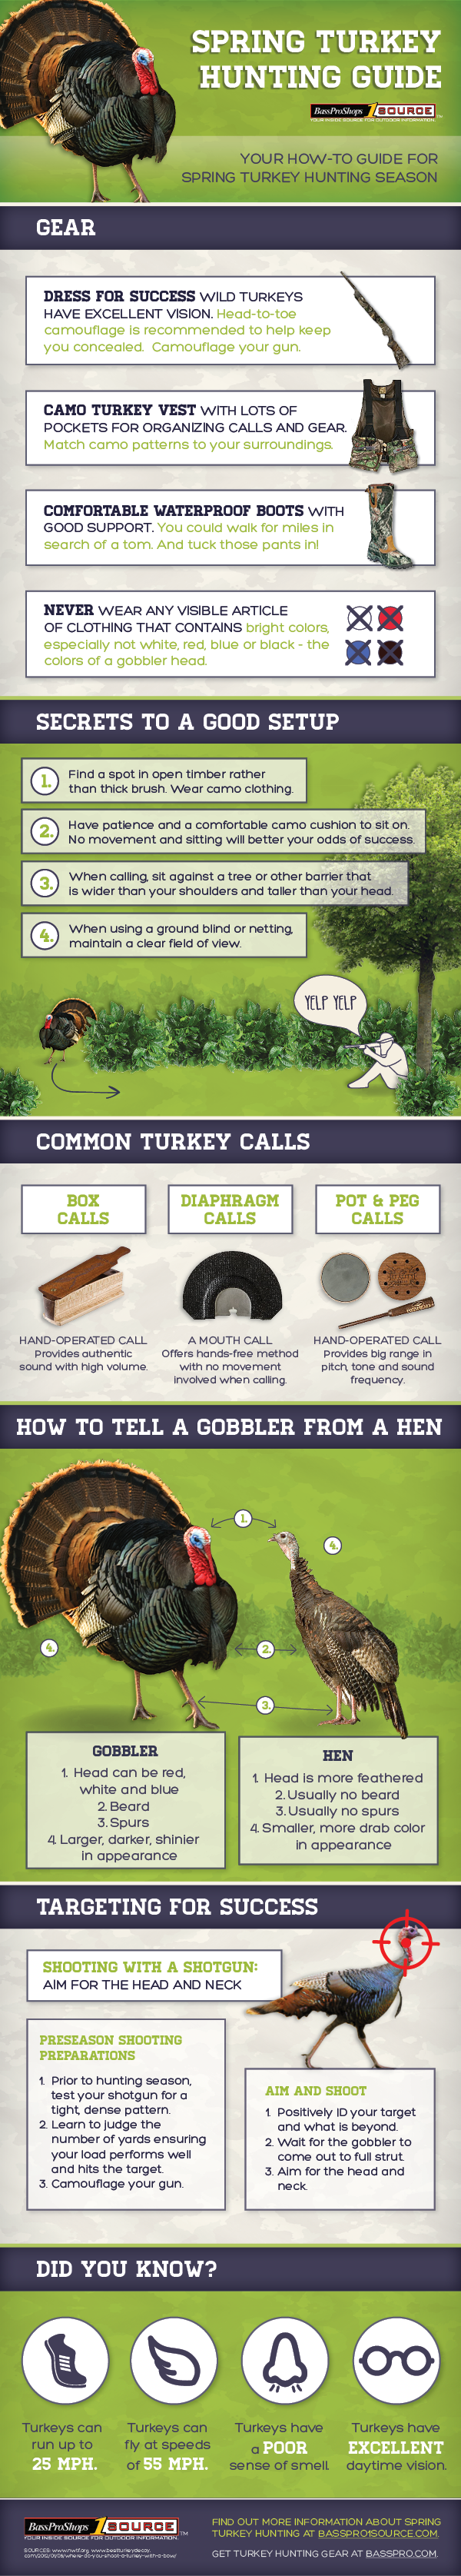 Spring Turkey Hunting Guide from Bass Pro Shops